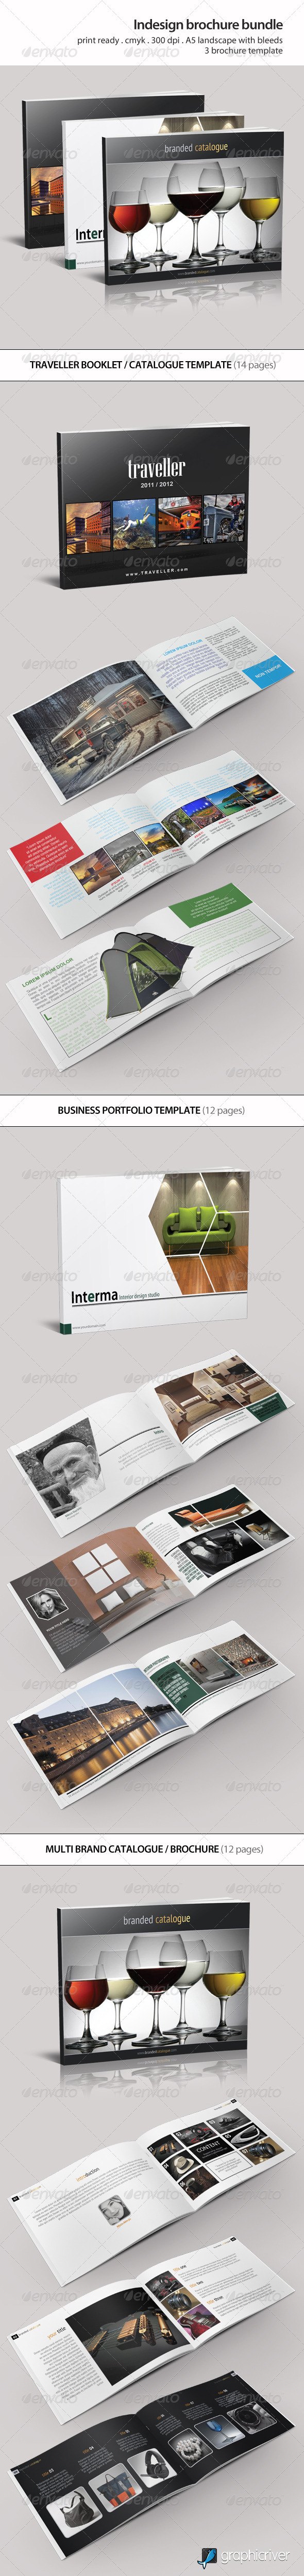 Indesign Brochure Bundle Vol 1 - Catalogs Brochures